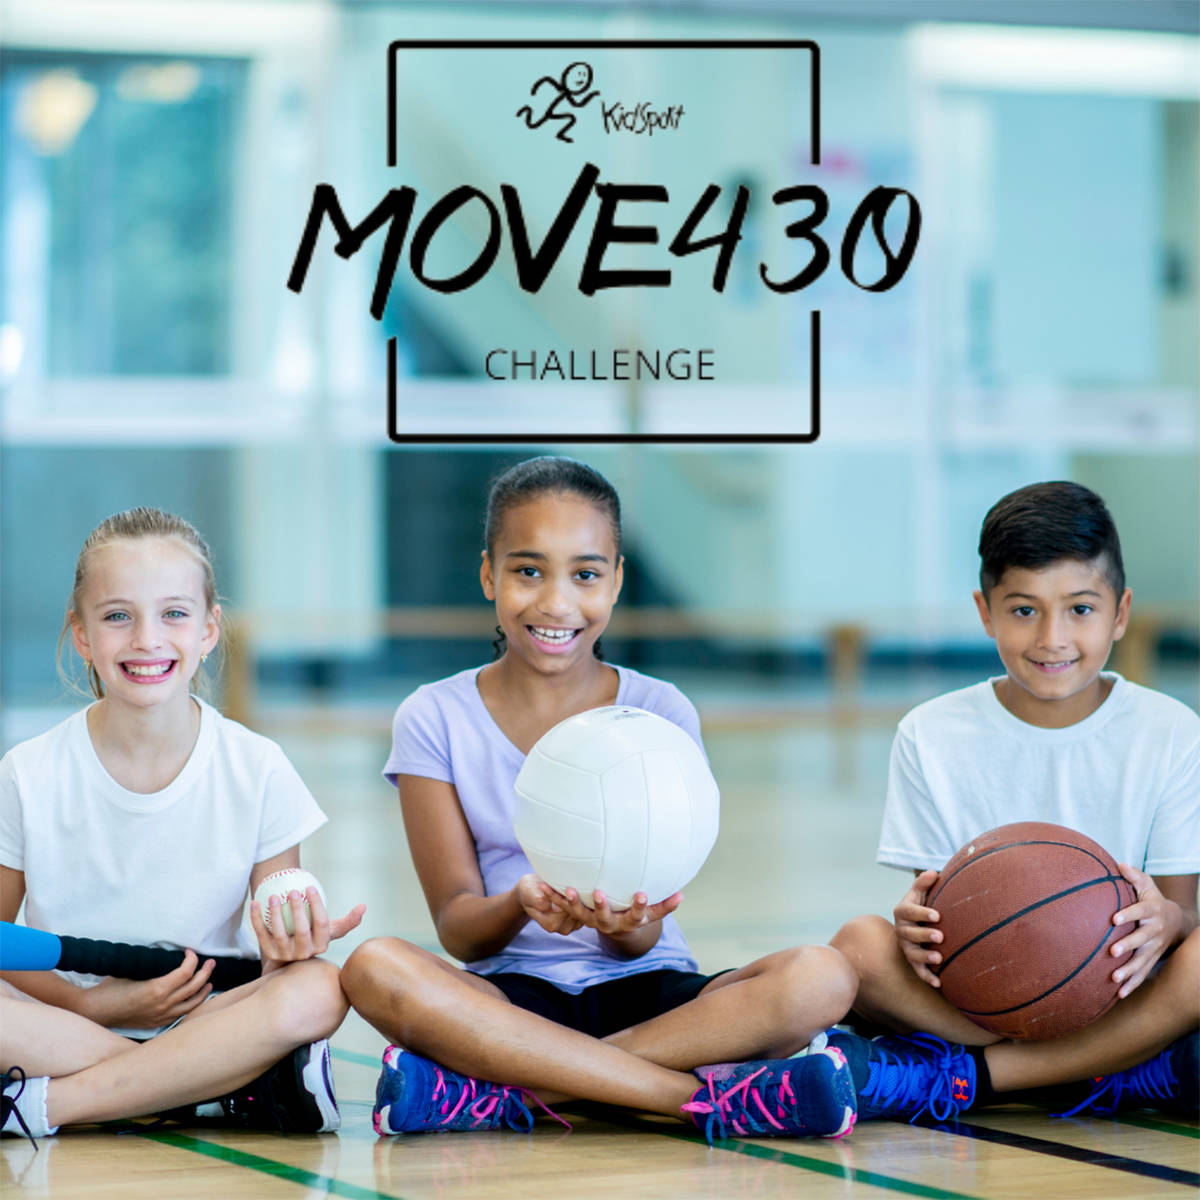 Move430 aims to encourage Langley residents to be active while raising funds to help kids play sports (KidSport image)